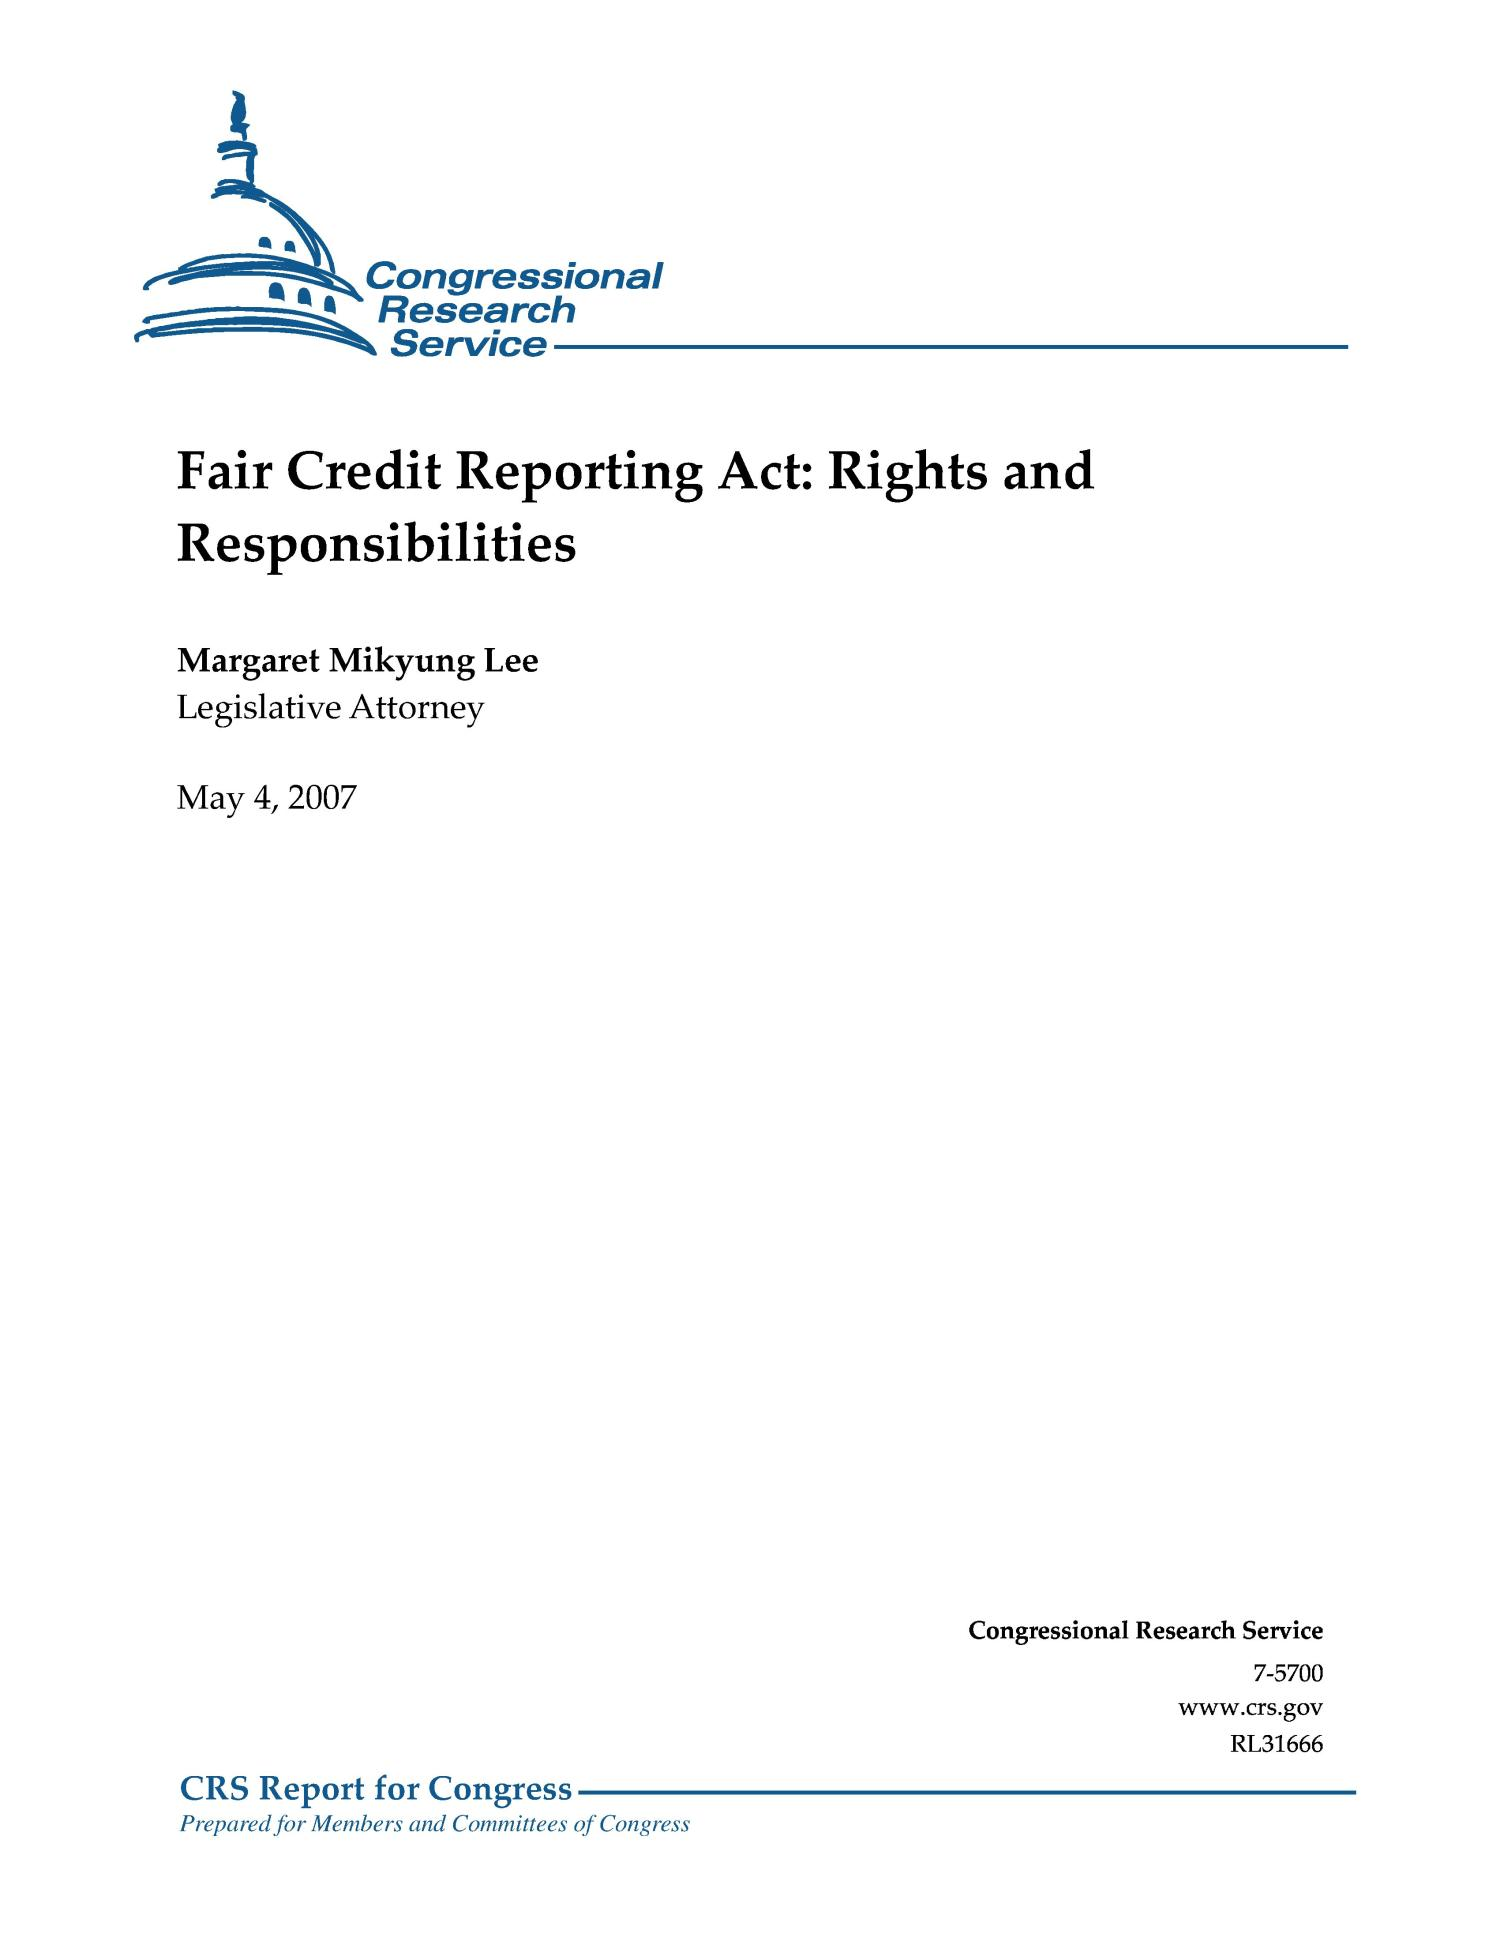 Fair Credit Reporting Act: Rights and Responsibilities                                                                                                      [Sequence #]: 1 of 13